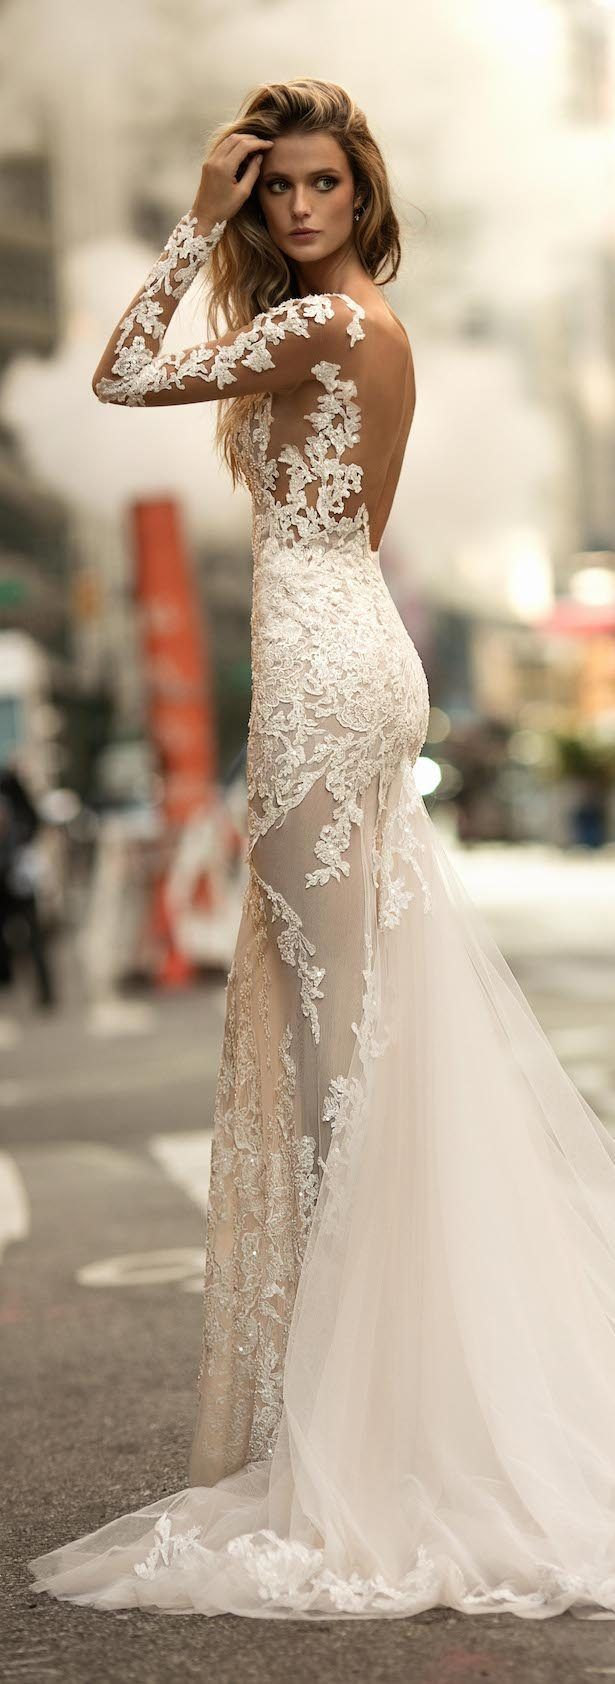 25 best ideas about wedding dress guest on pinterest for Skin tight wedding dresses